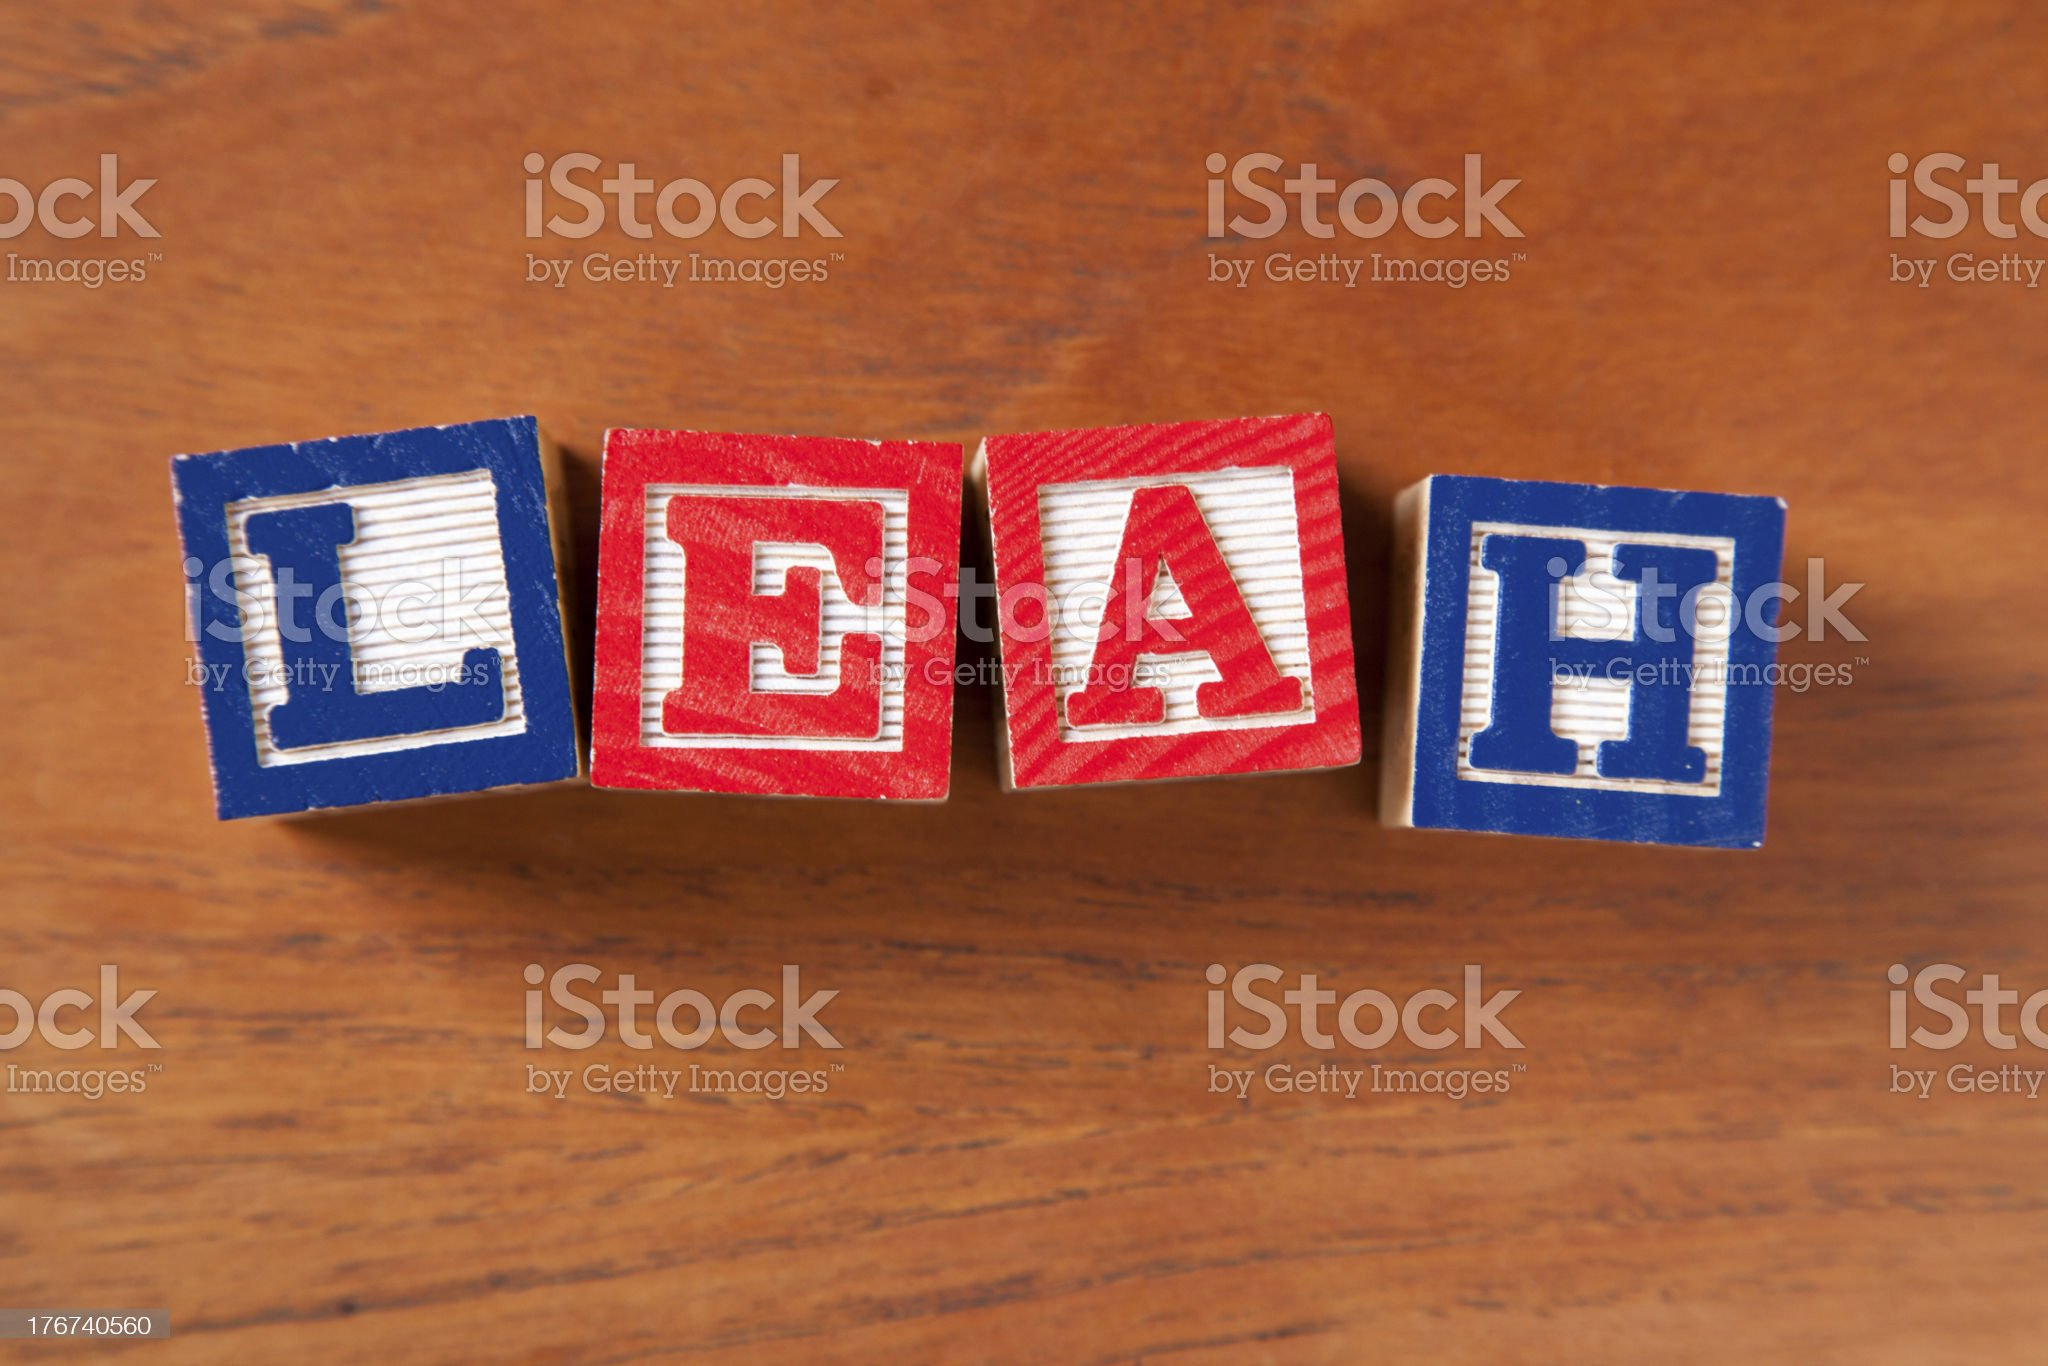 Leah royalty-free stock photo